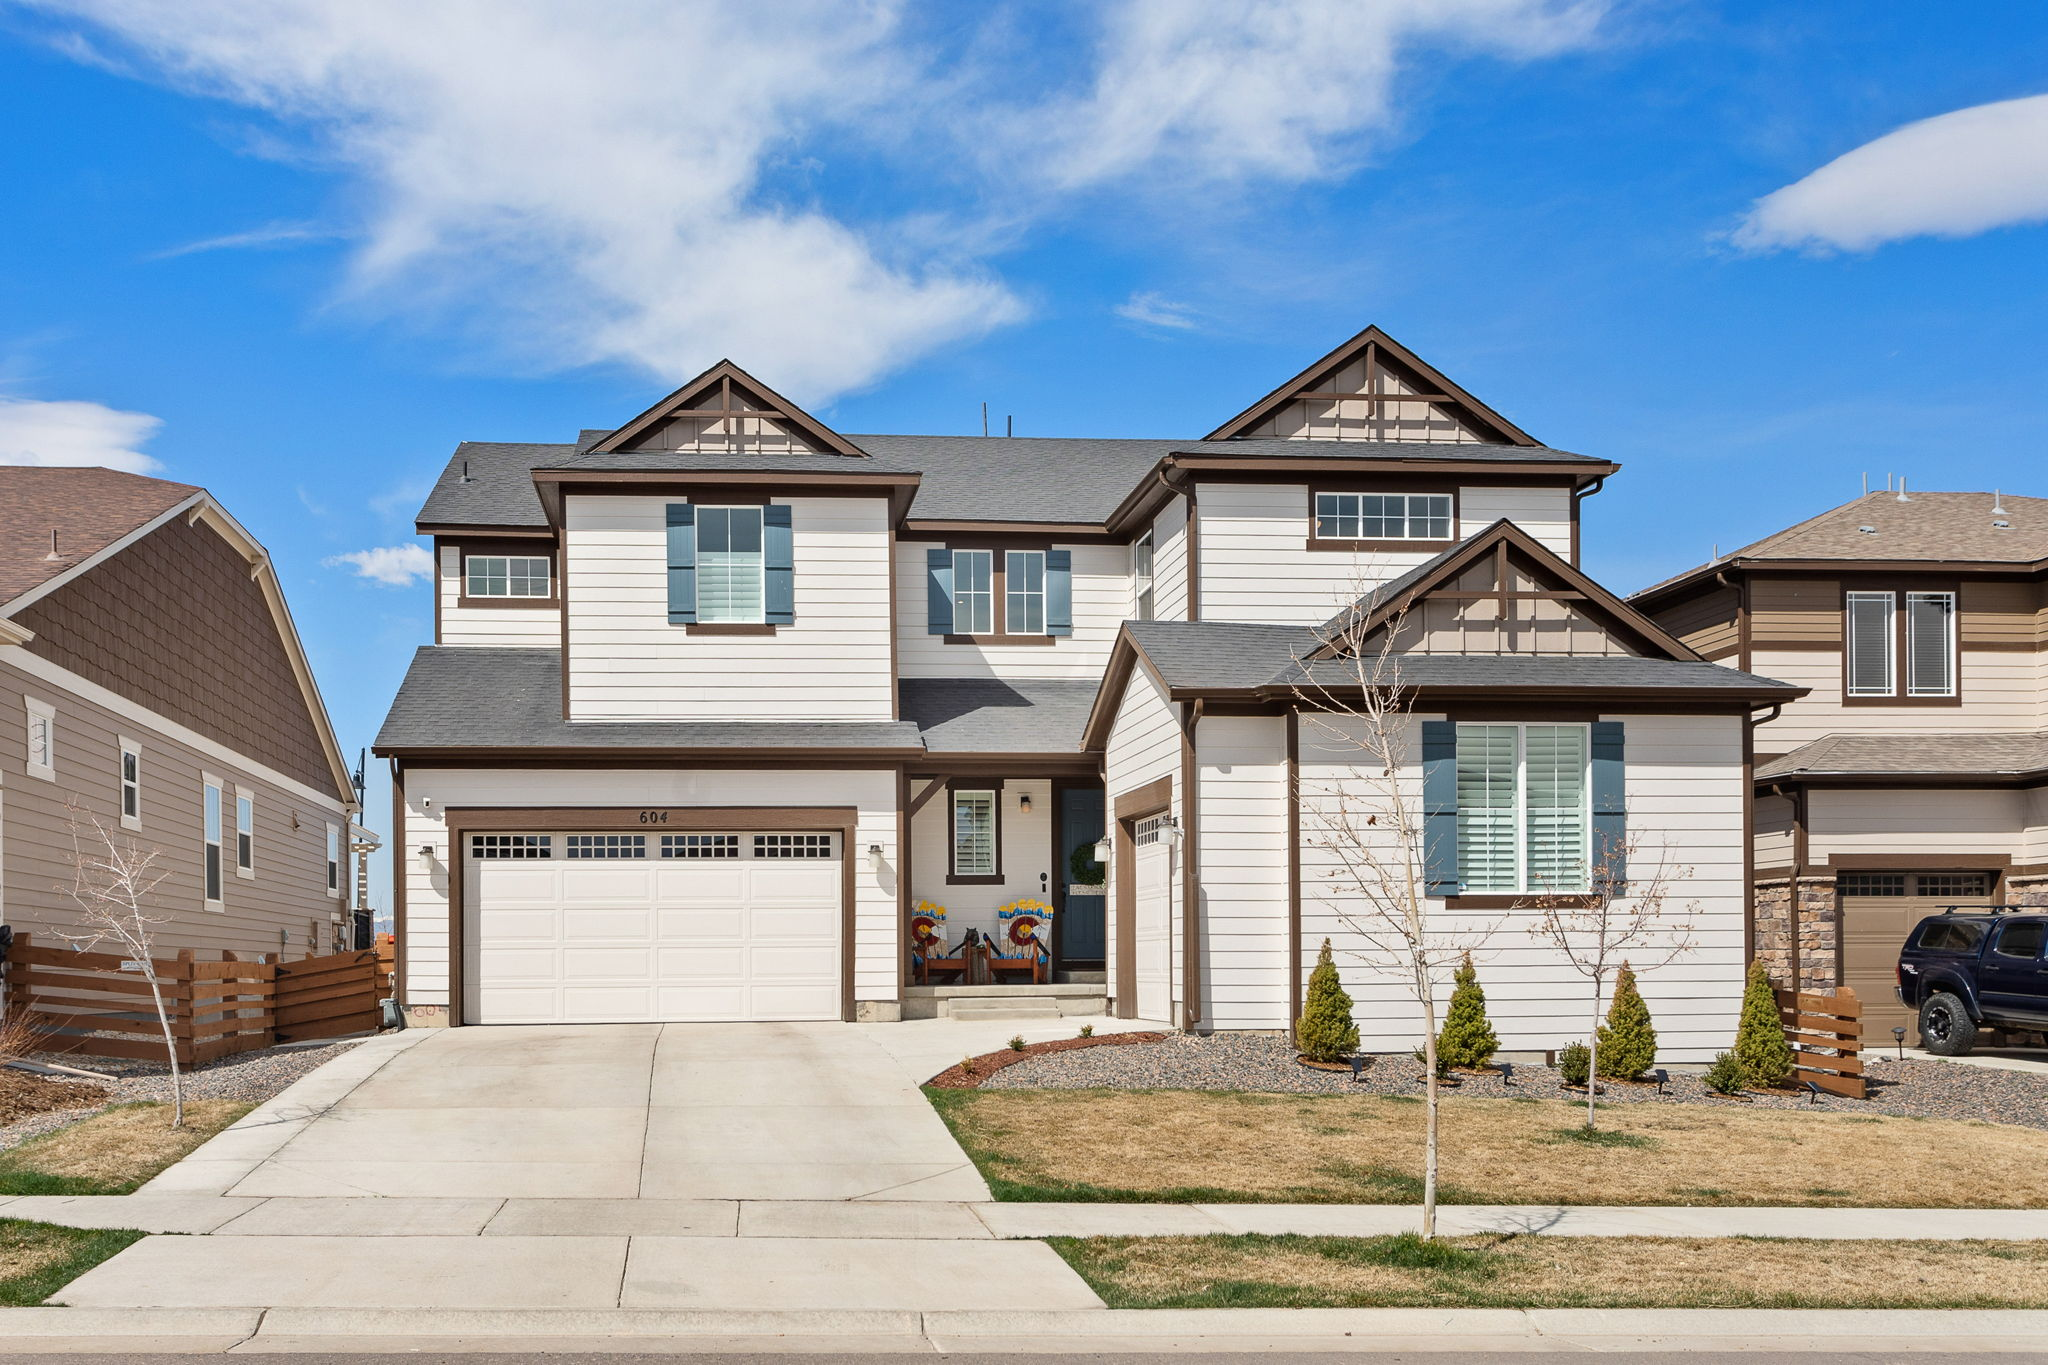 604 Gold Hill Dr, Erie, CO 80516, US